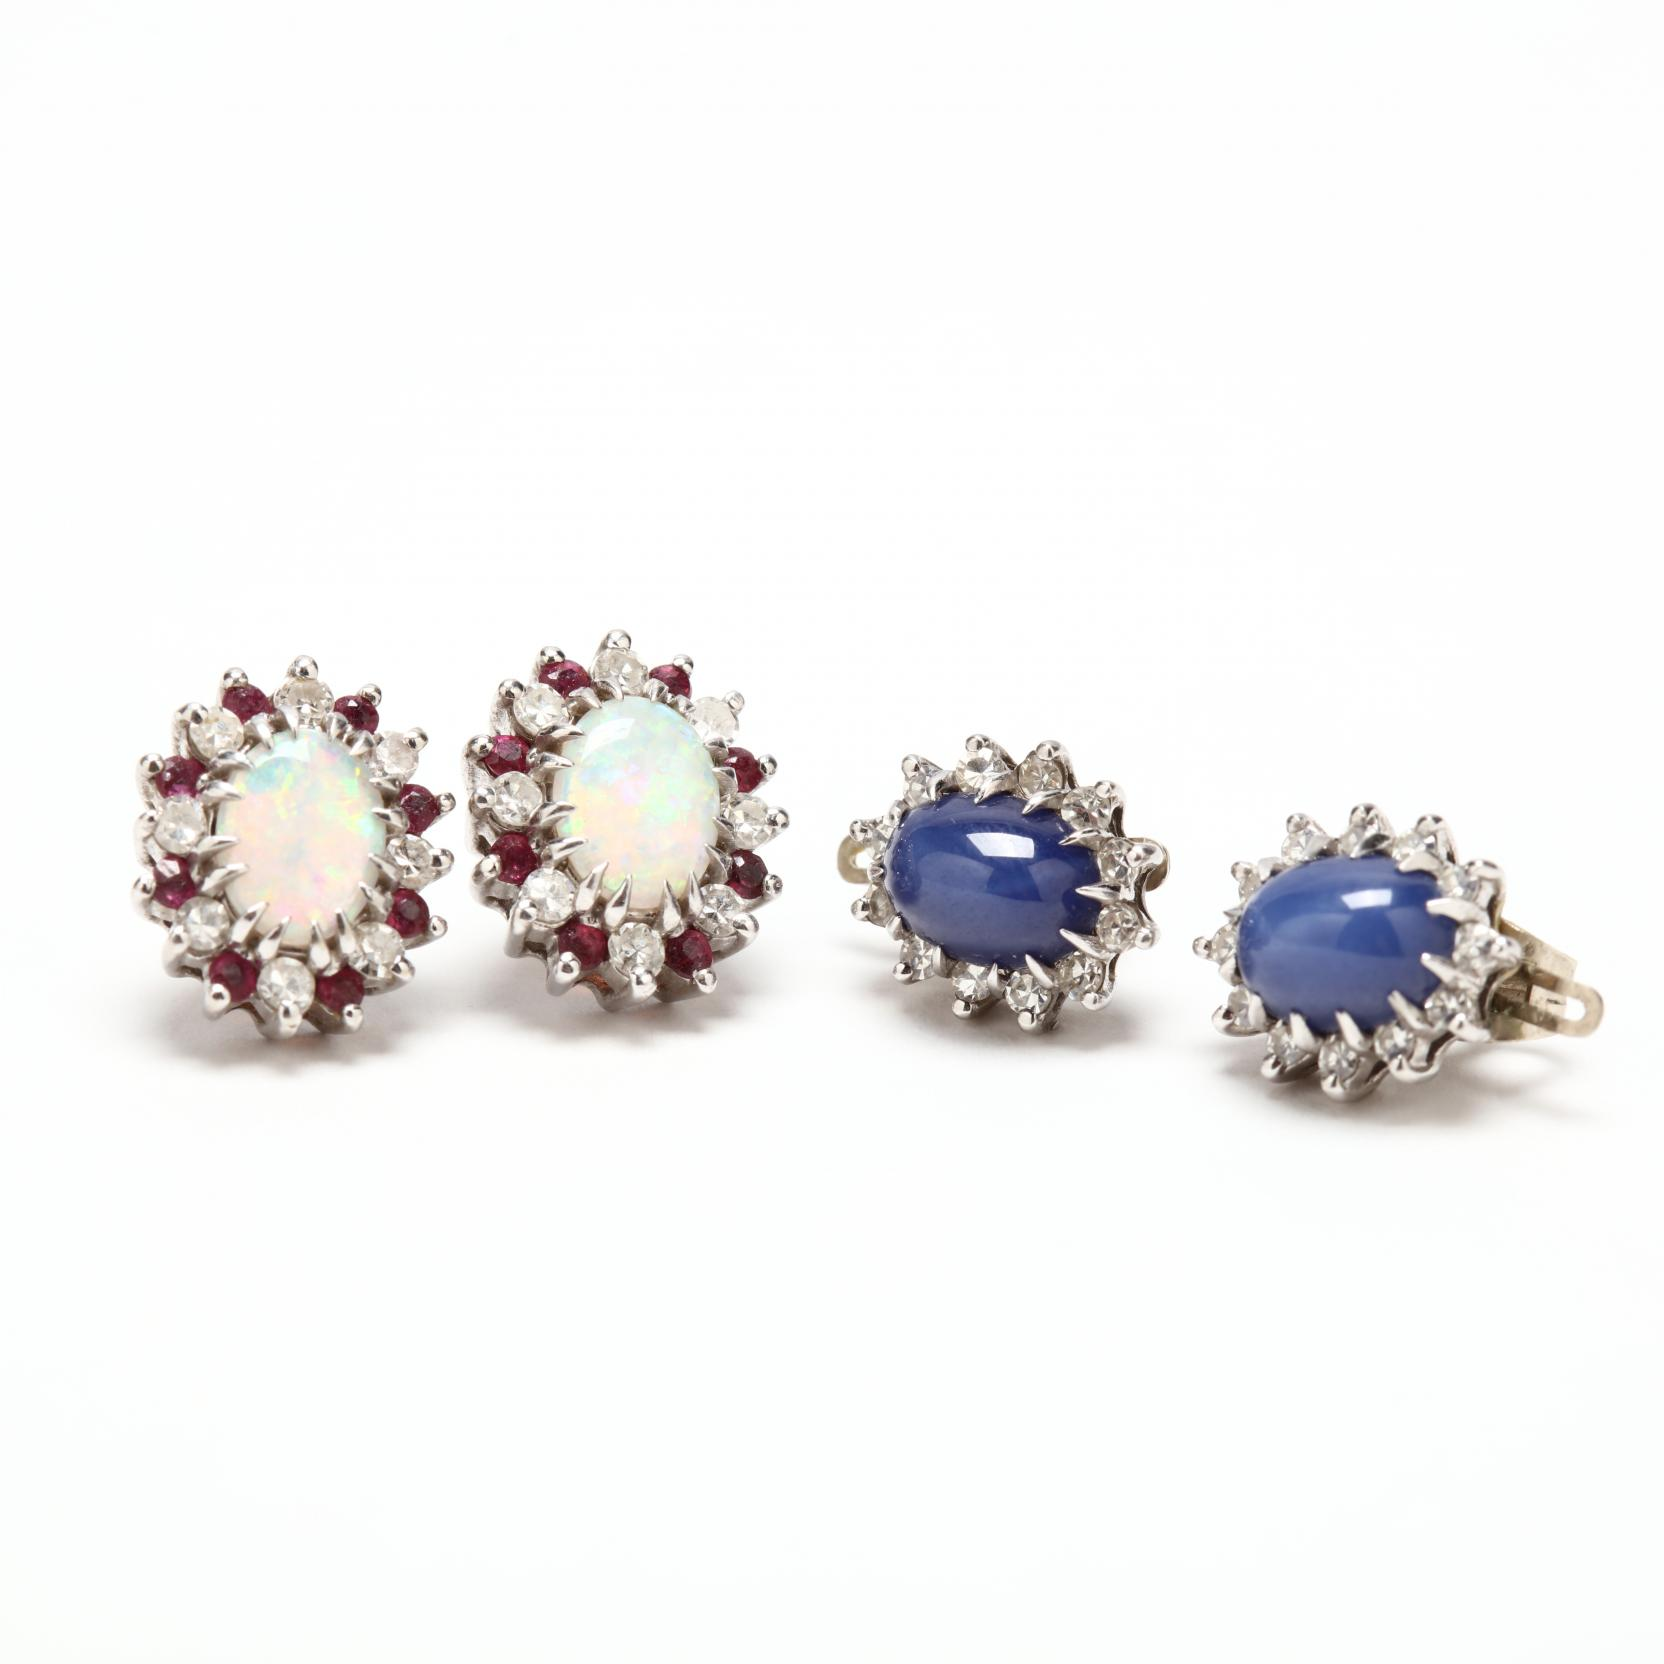 two-pairs-white-gold-and-gem-set-earrings